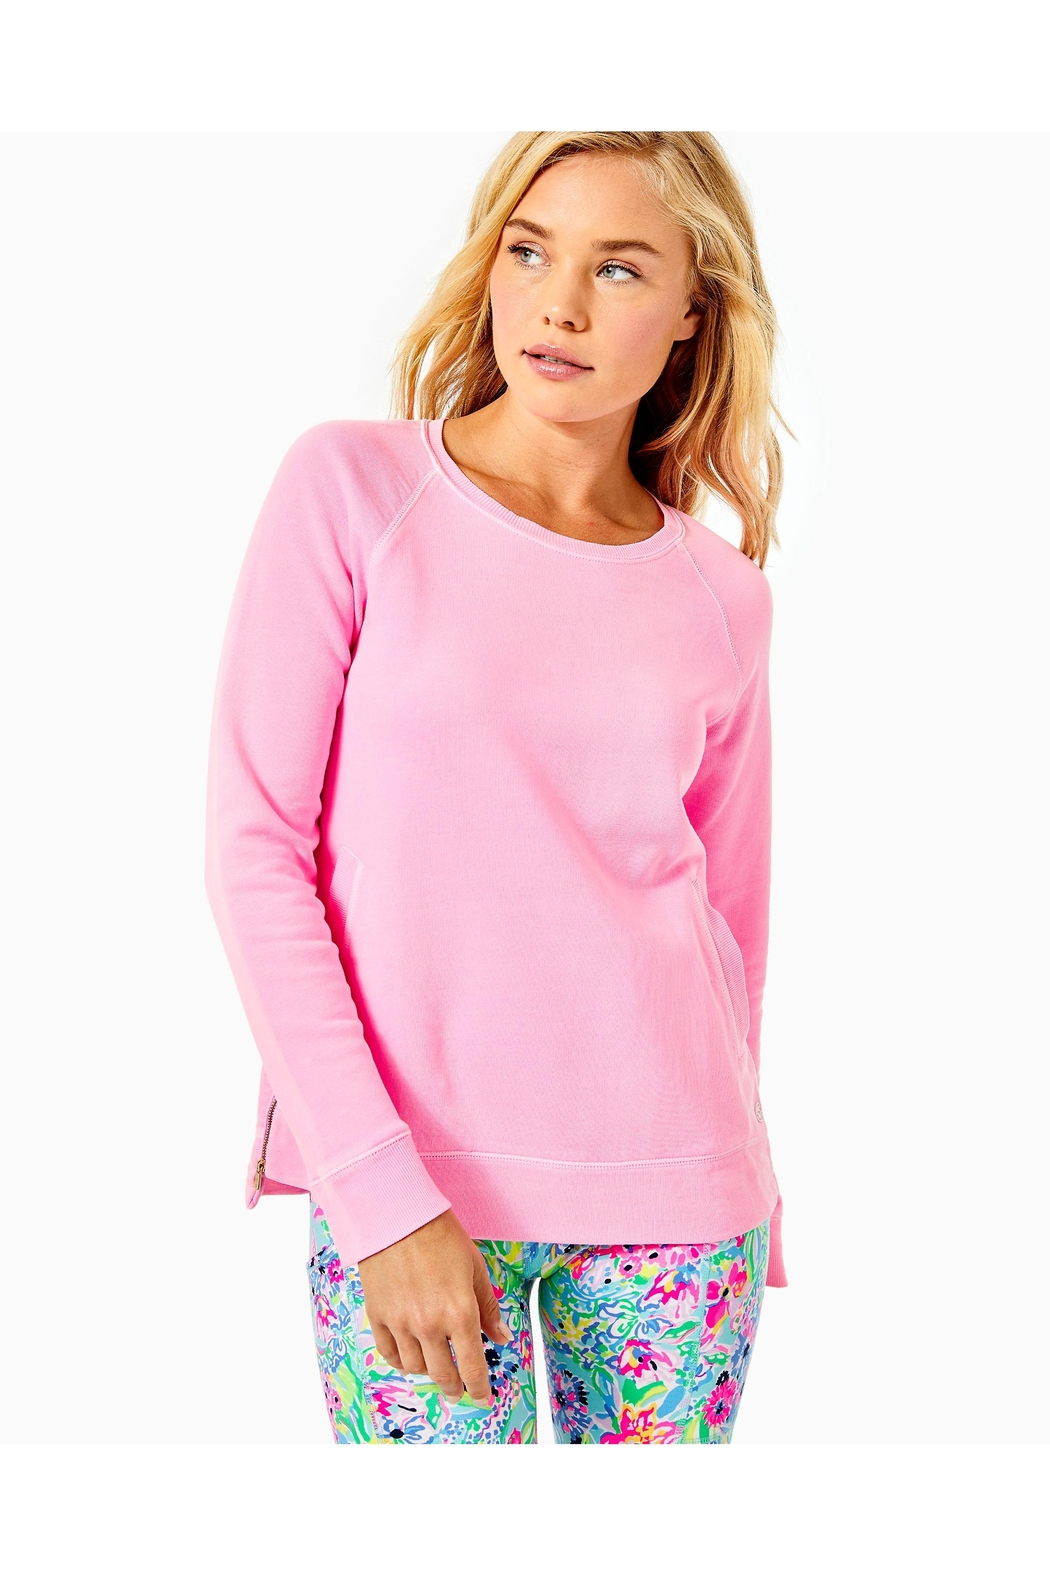 Lilly Pulitzer Luxletic Beach-Comber Pullover - Side Cropped Image